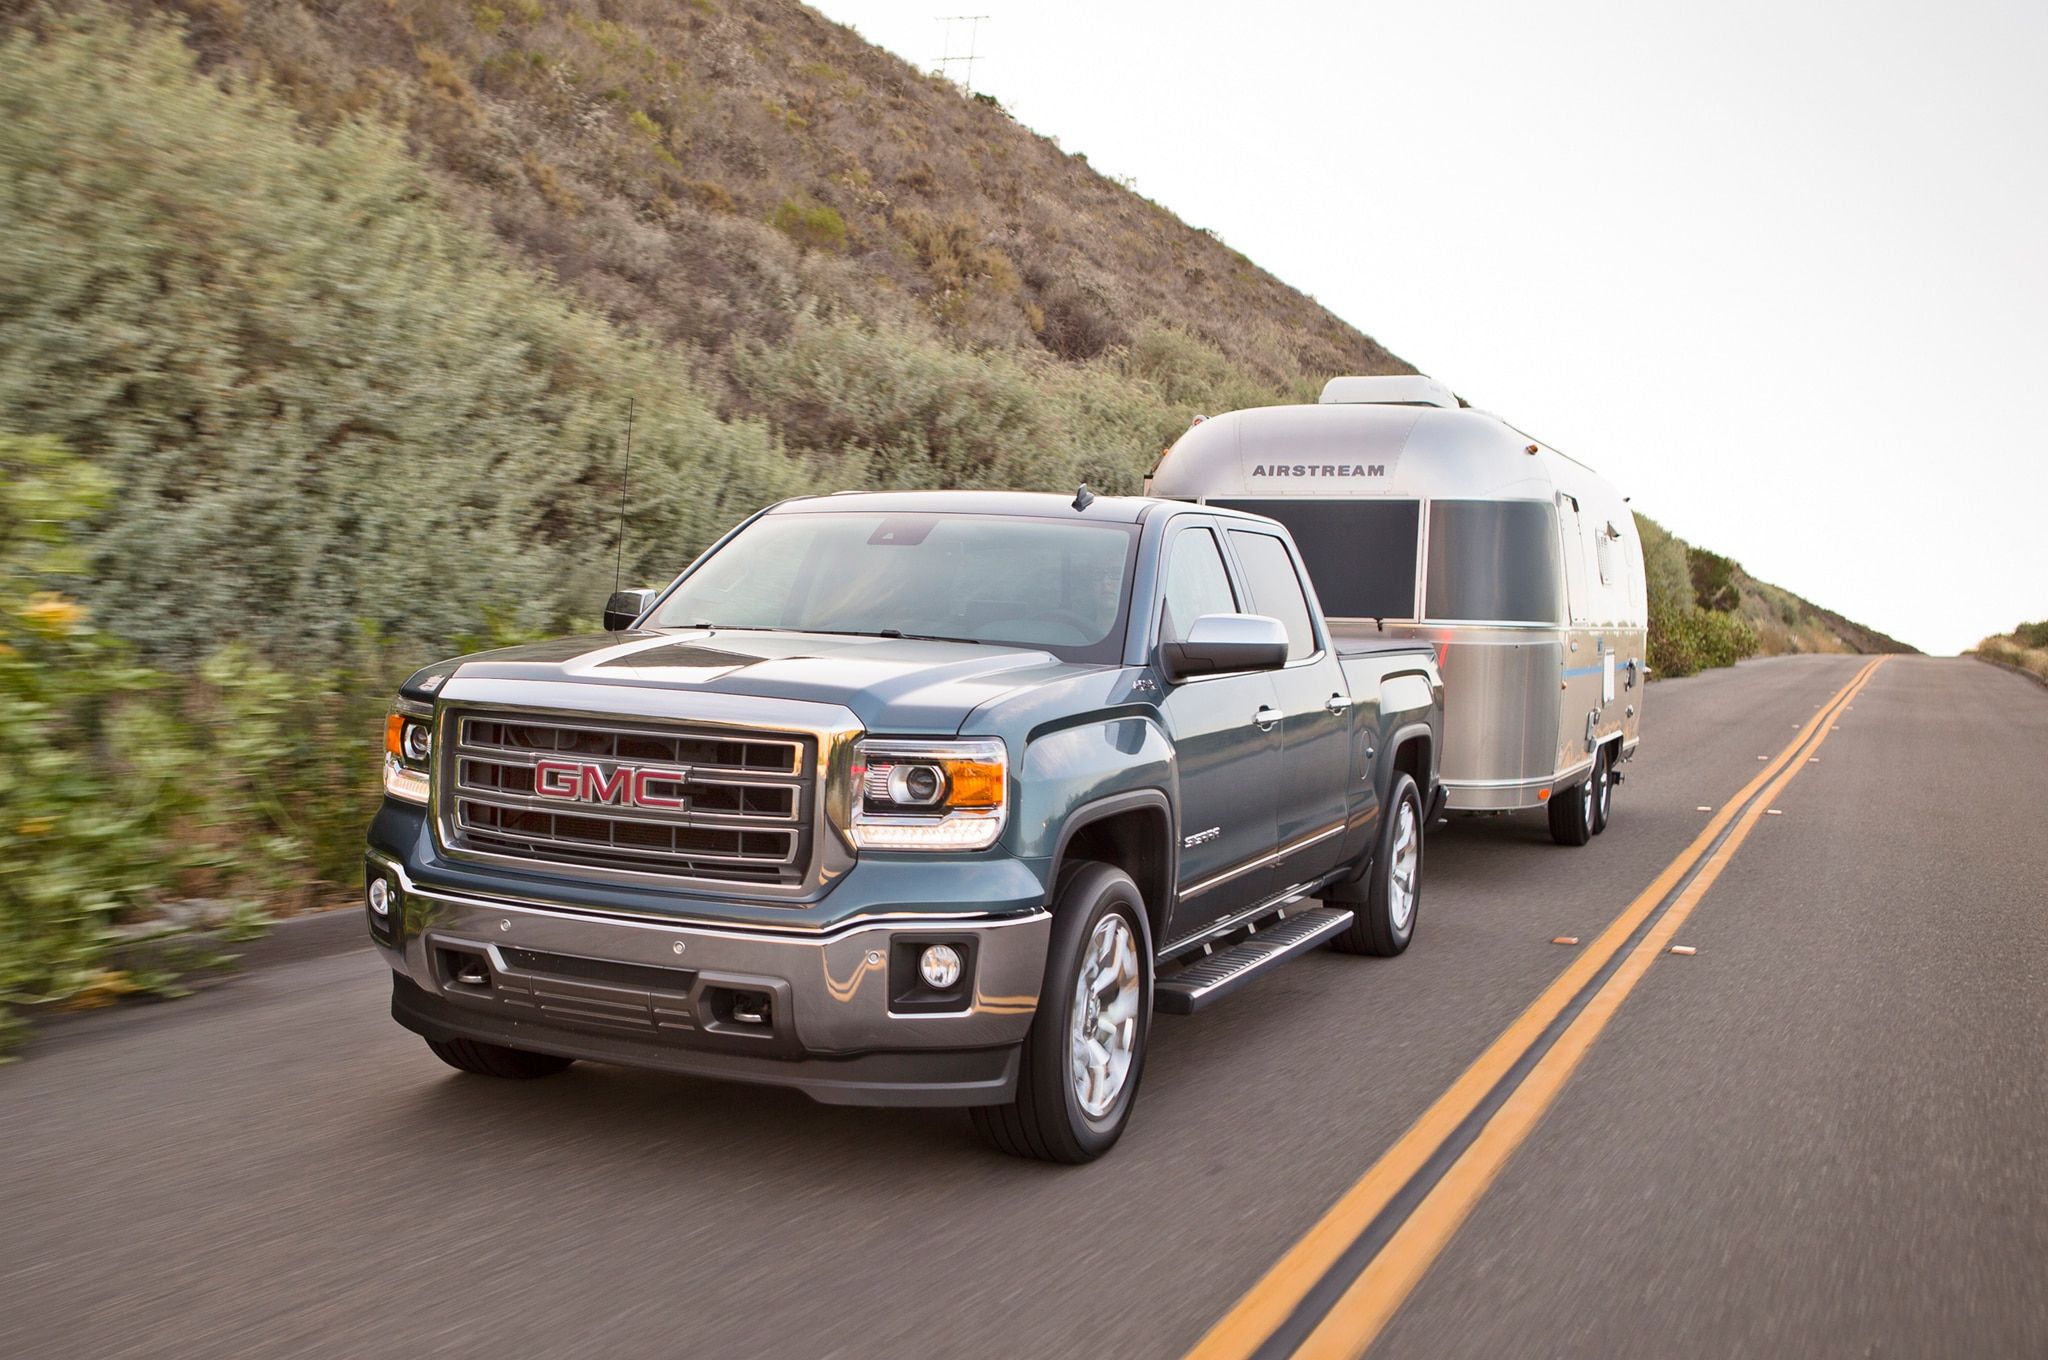 2014 Gmc Sierra Slt Towing1